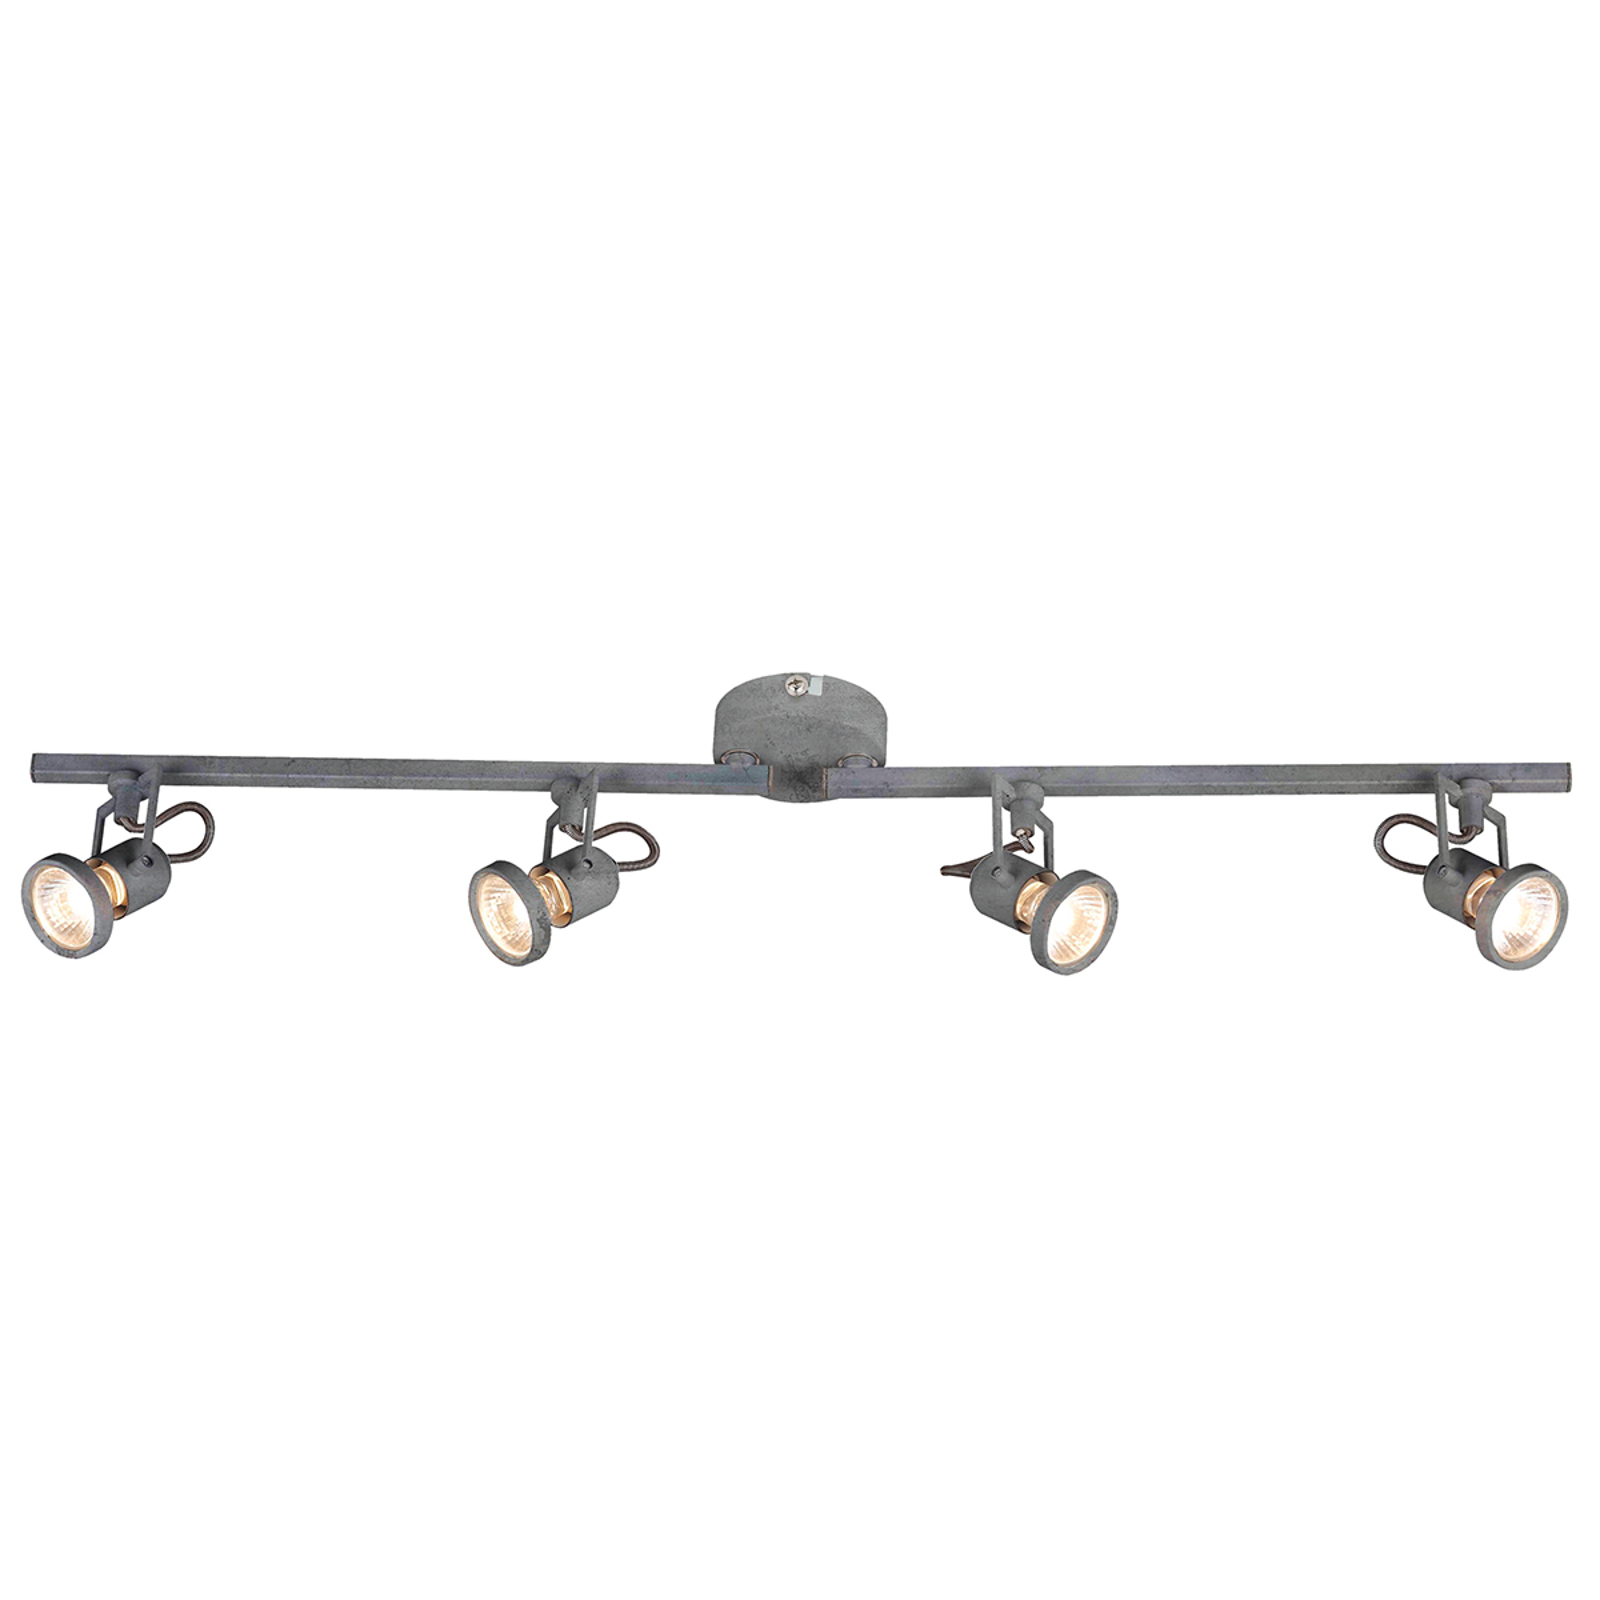 Uitrichtbare LED plafondlamp Concreto - 4 lichtbr.